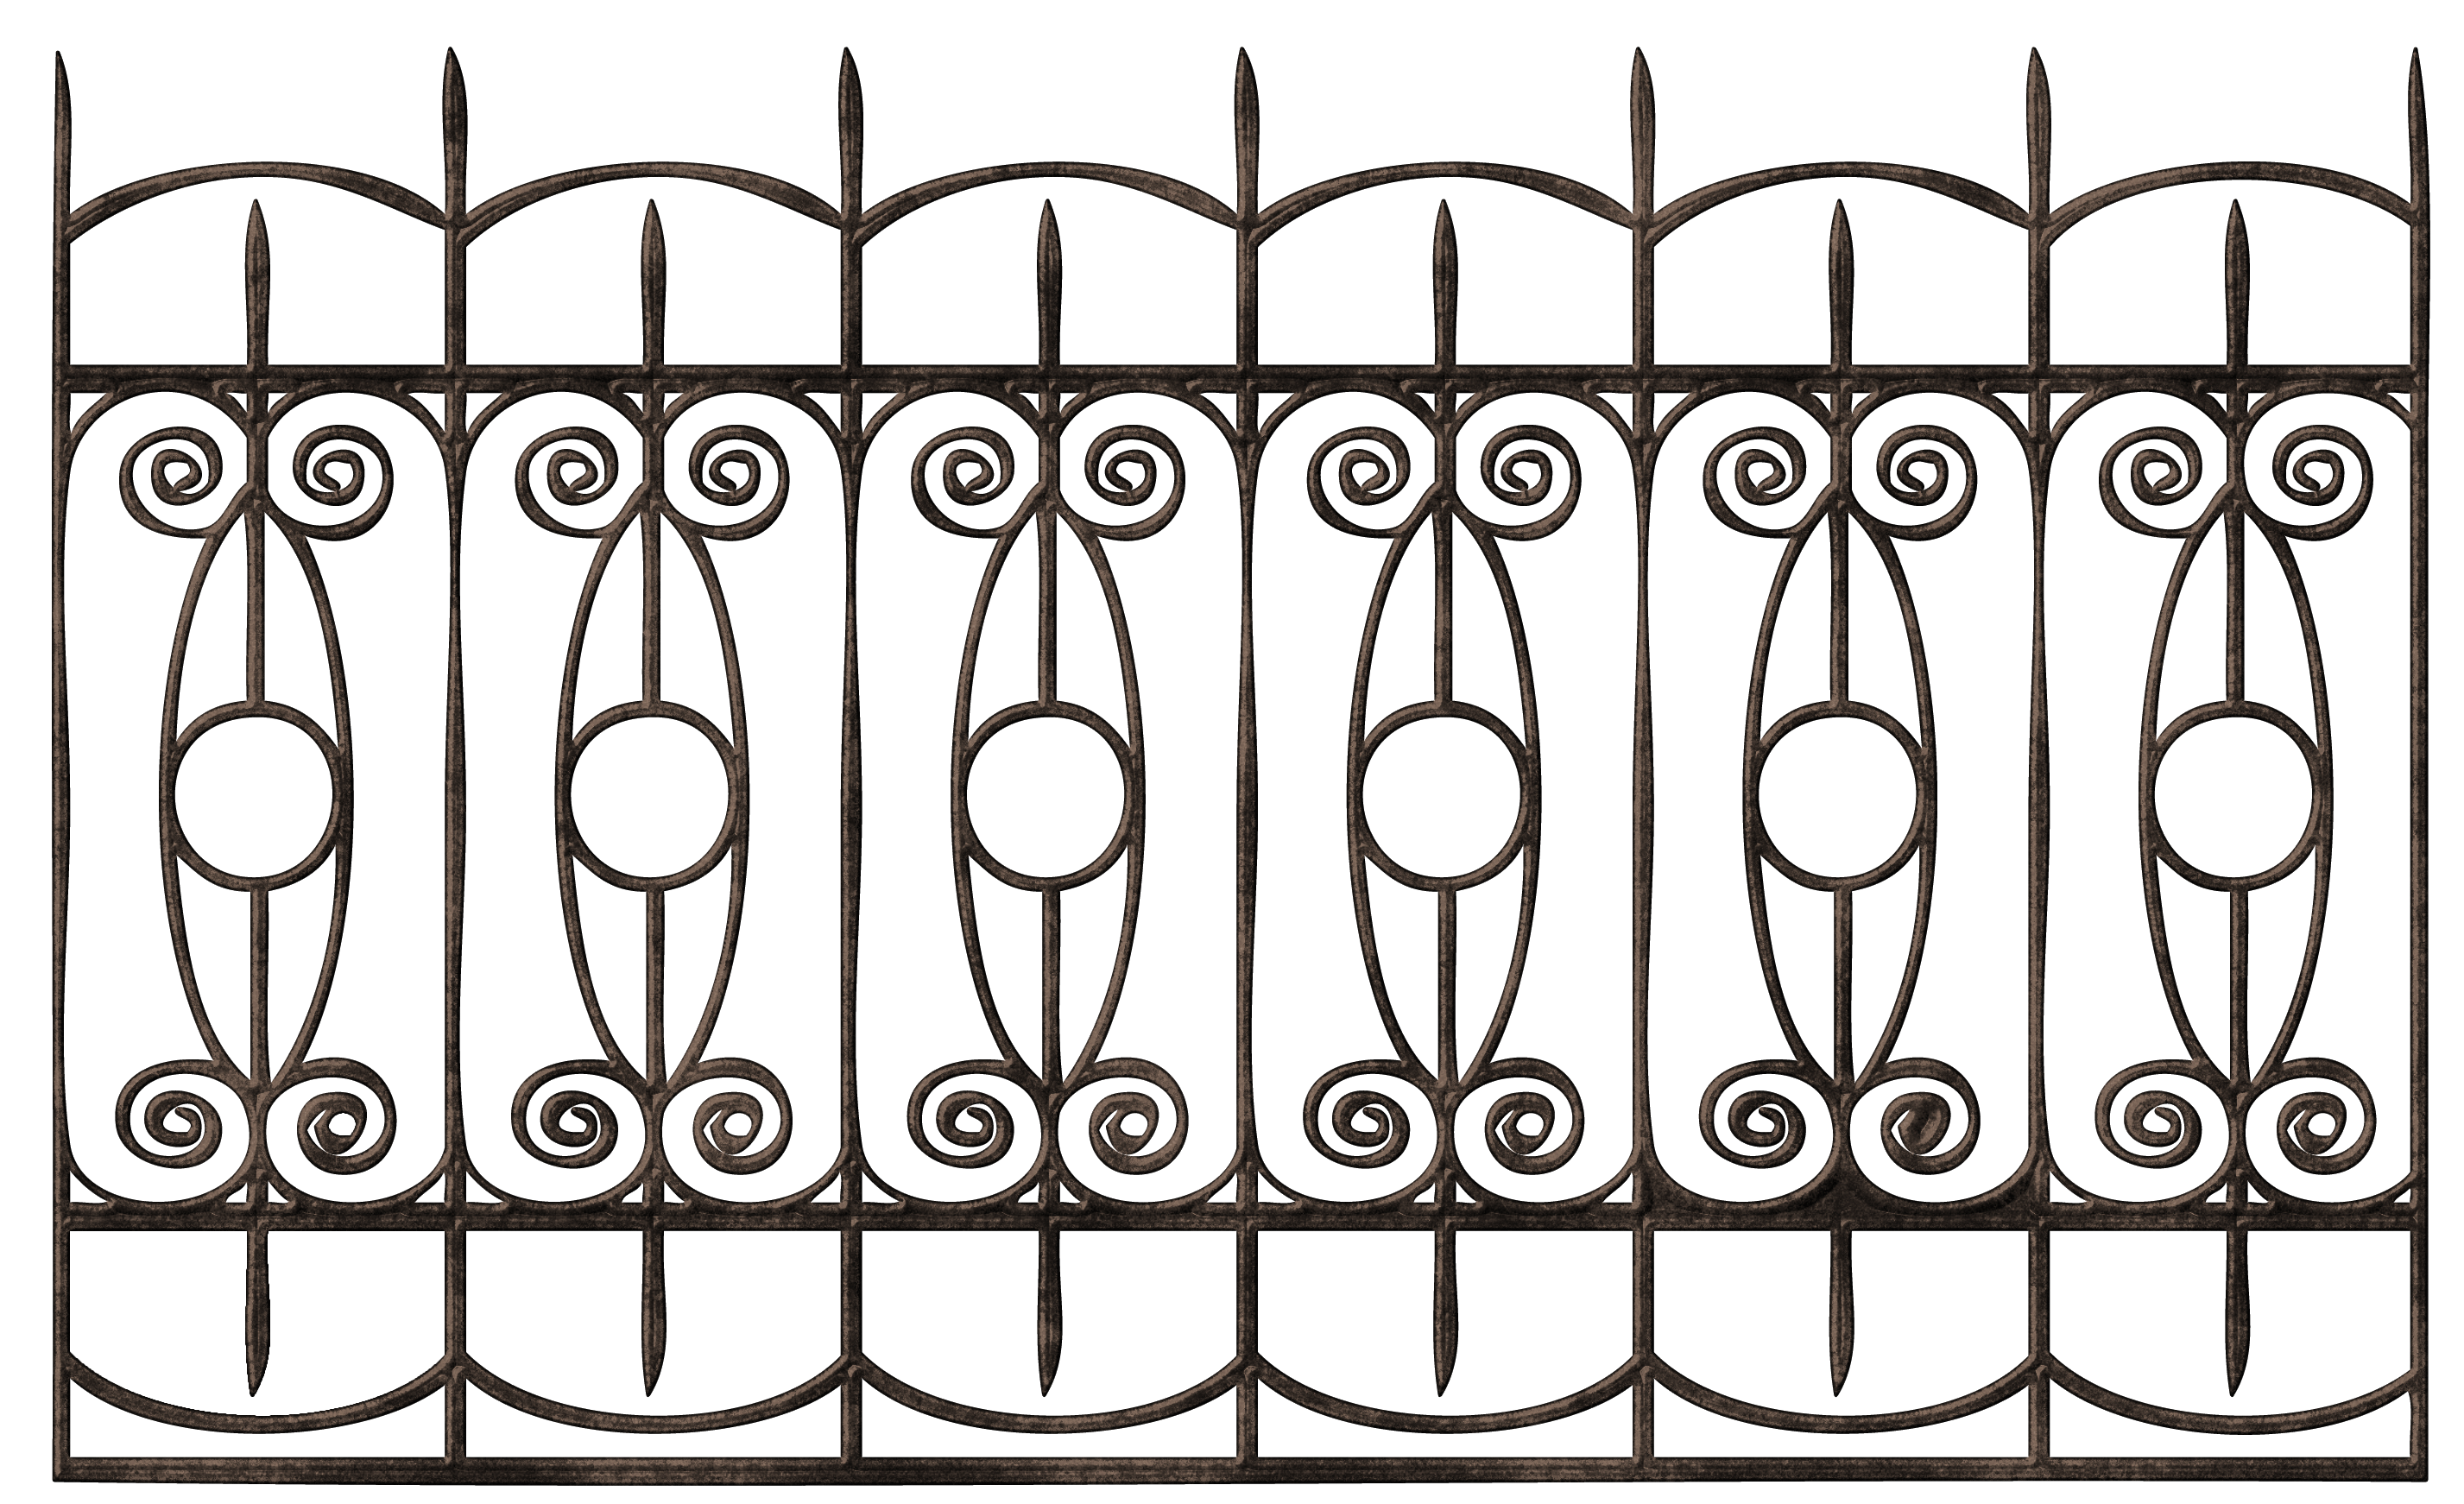 Gate clipart metal bar. Transparent ornamental iron fence